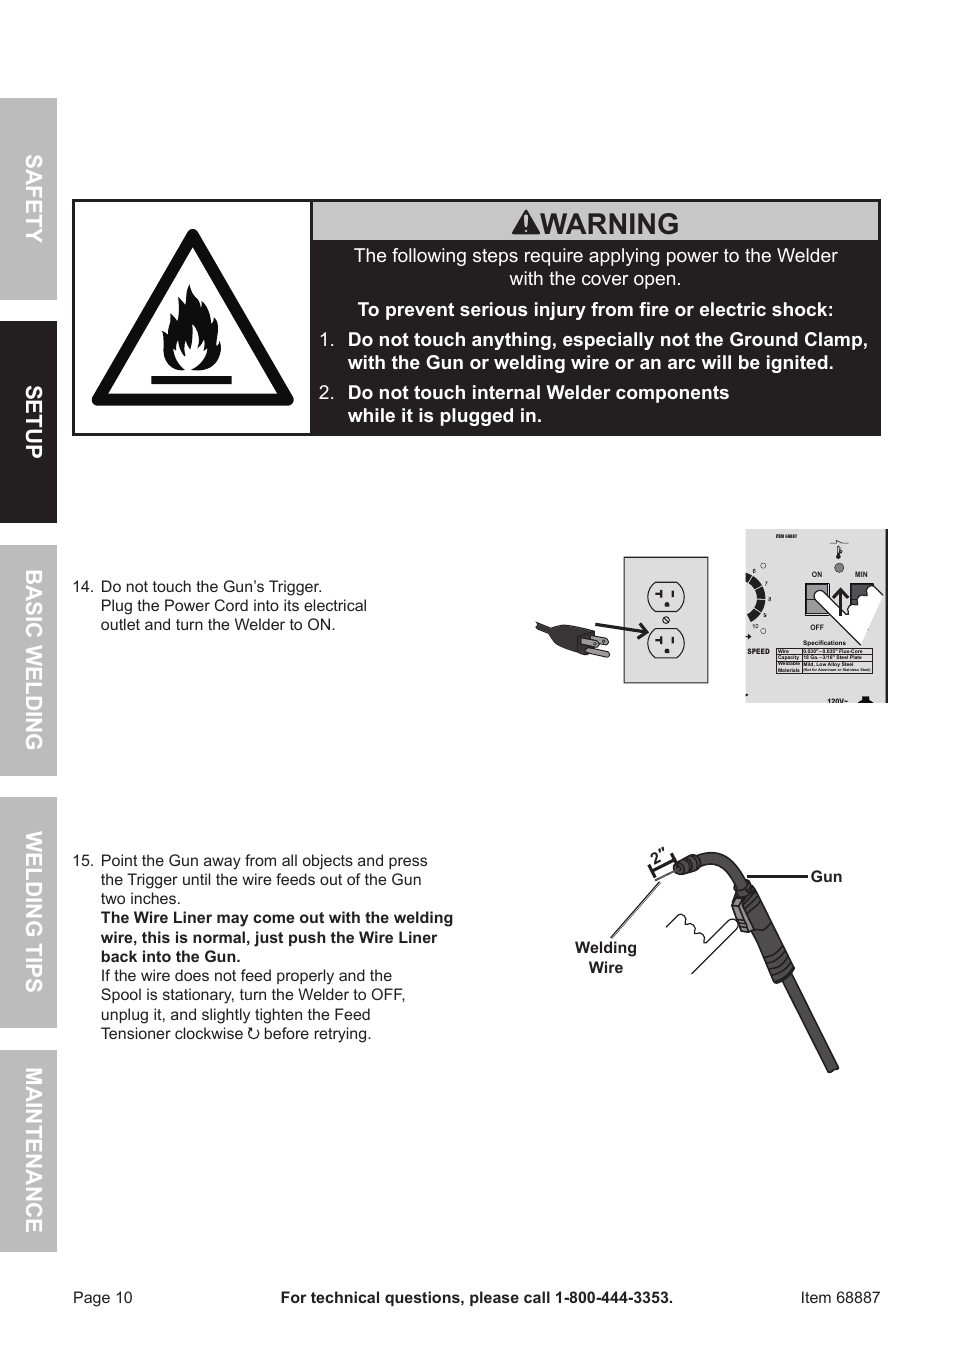 Wiring Instructions For Chicago Title